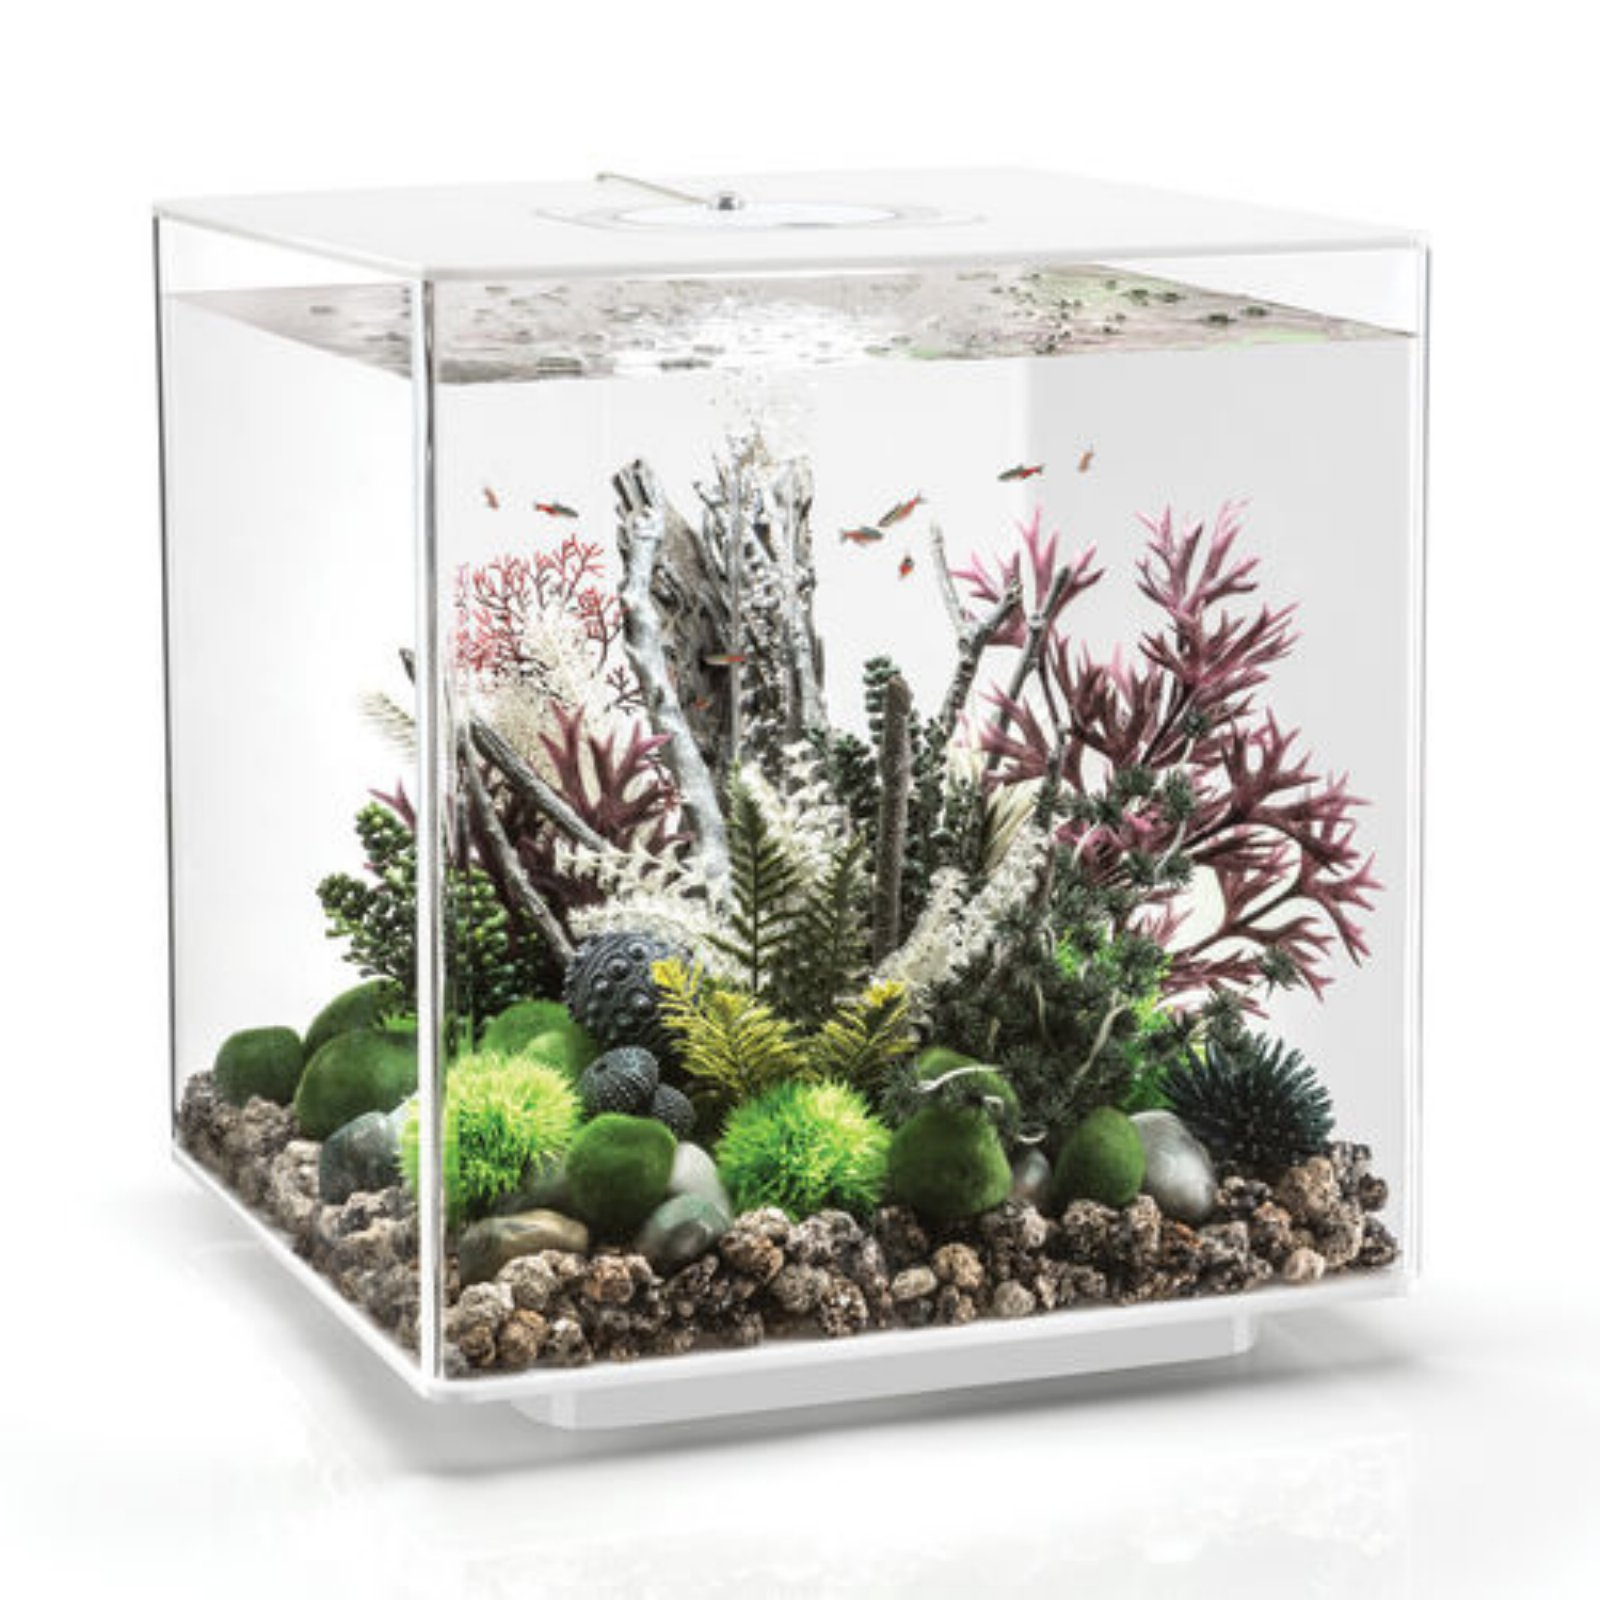 biOrb by Oase CUBE 60 Aquarium with MCR Light